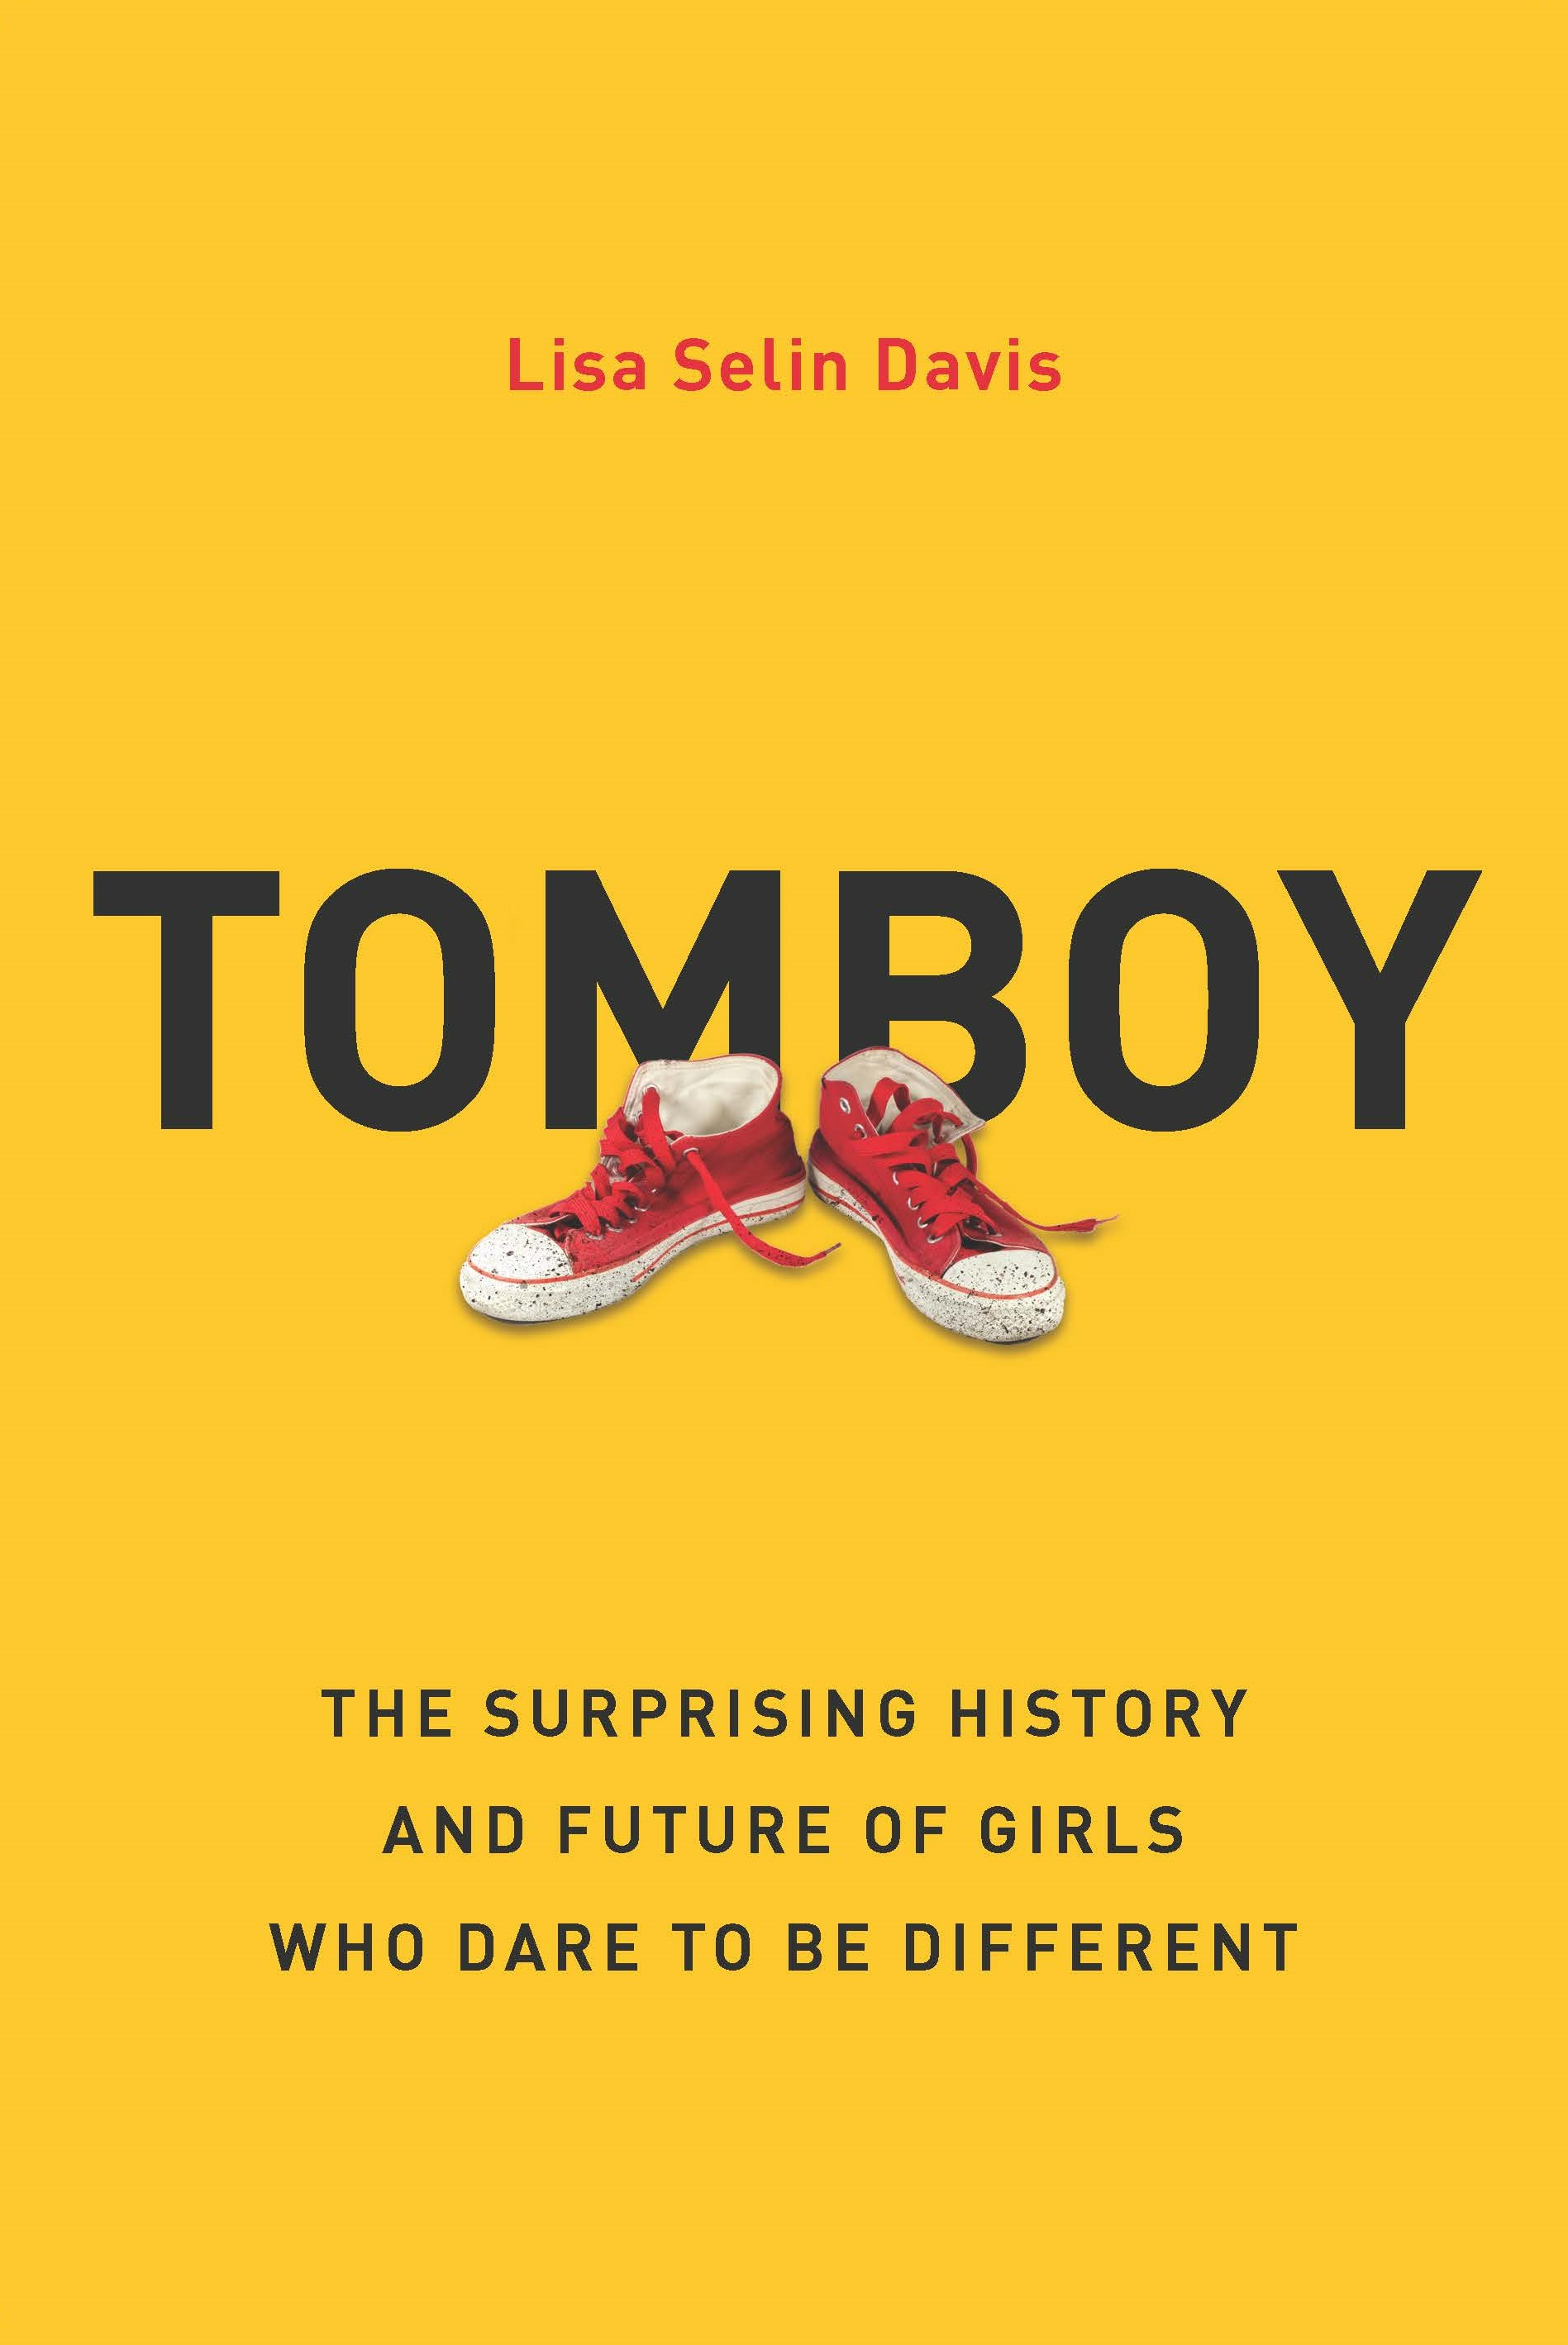 Book Launch: Tomboy by Lisa Selin Davis in conversation with Lauren Sandler